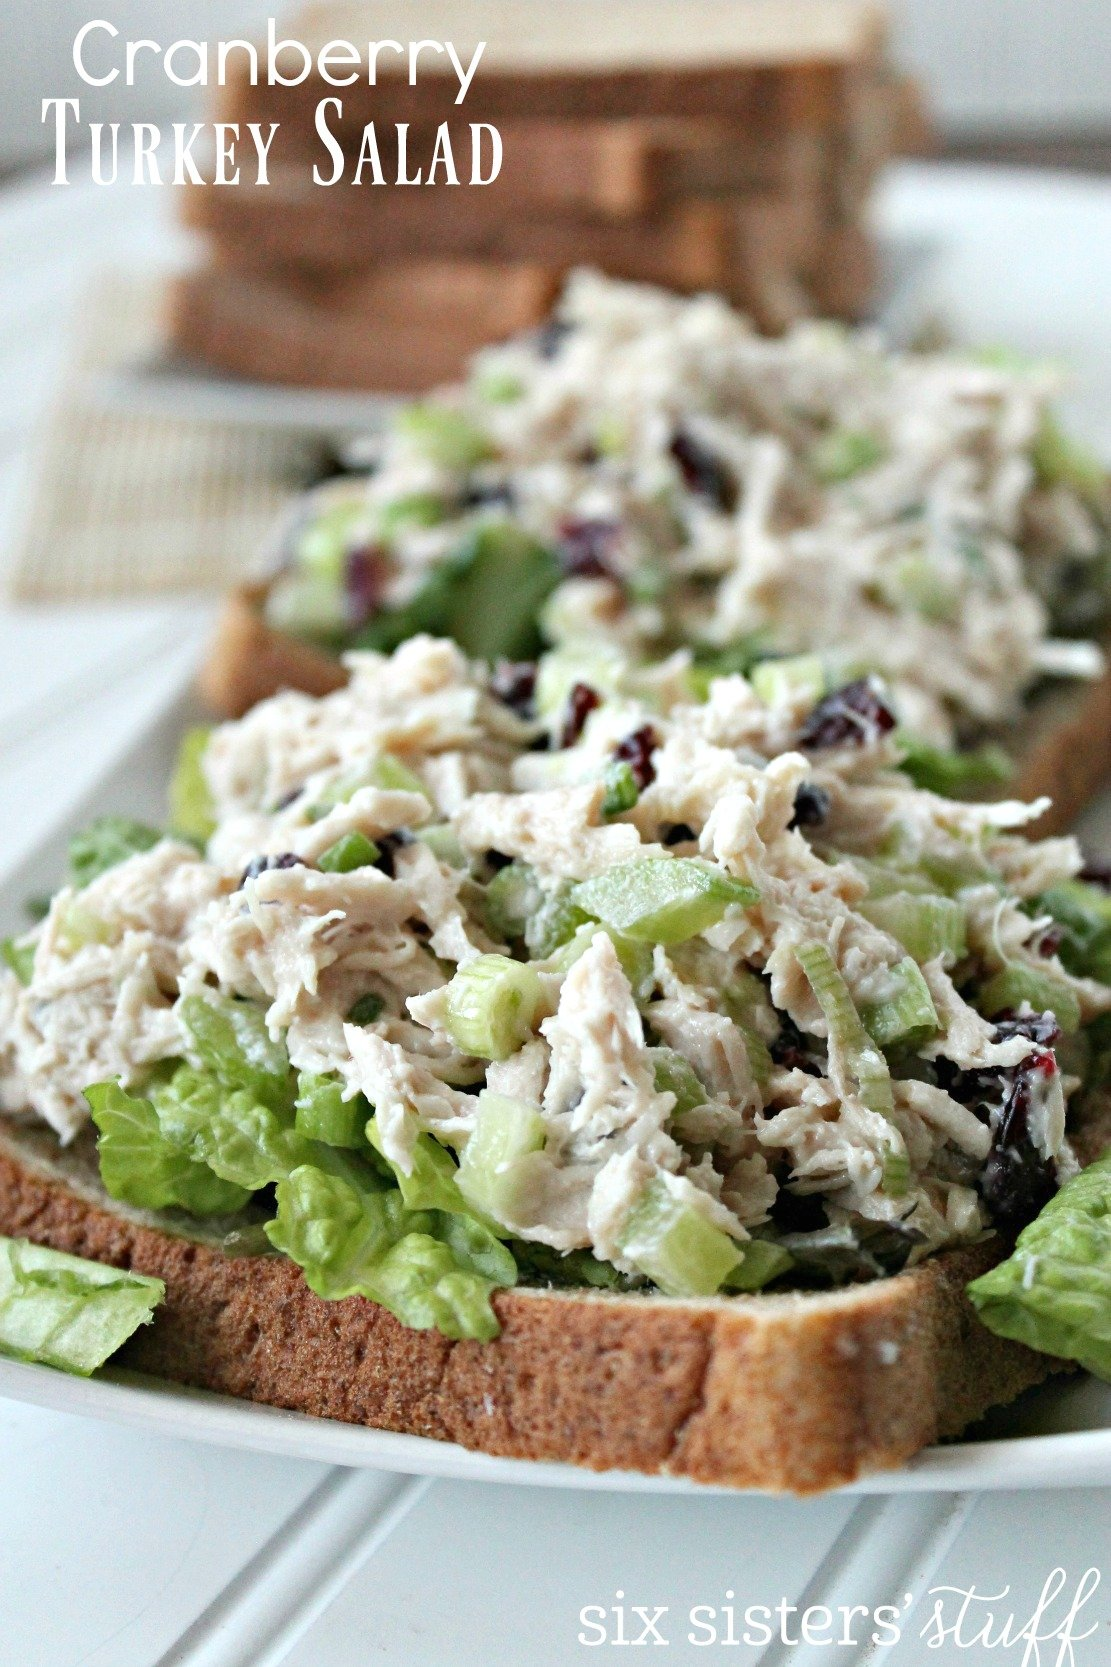 Cranberry Turkey Salad Recipe